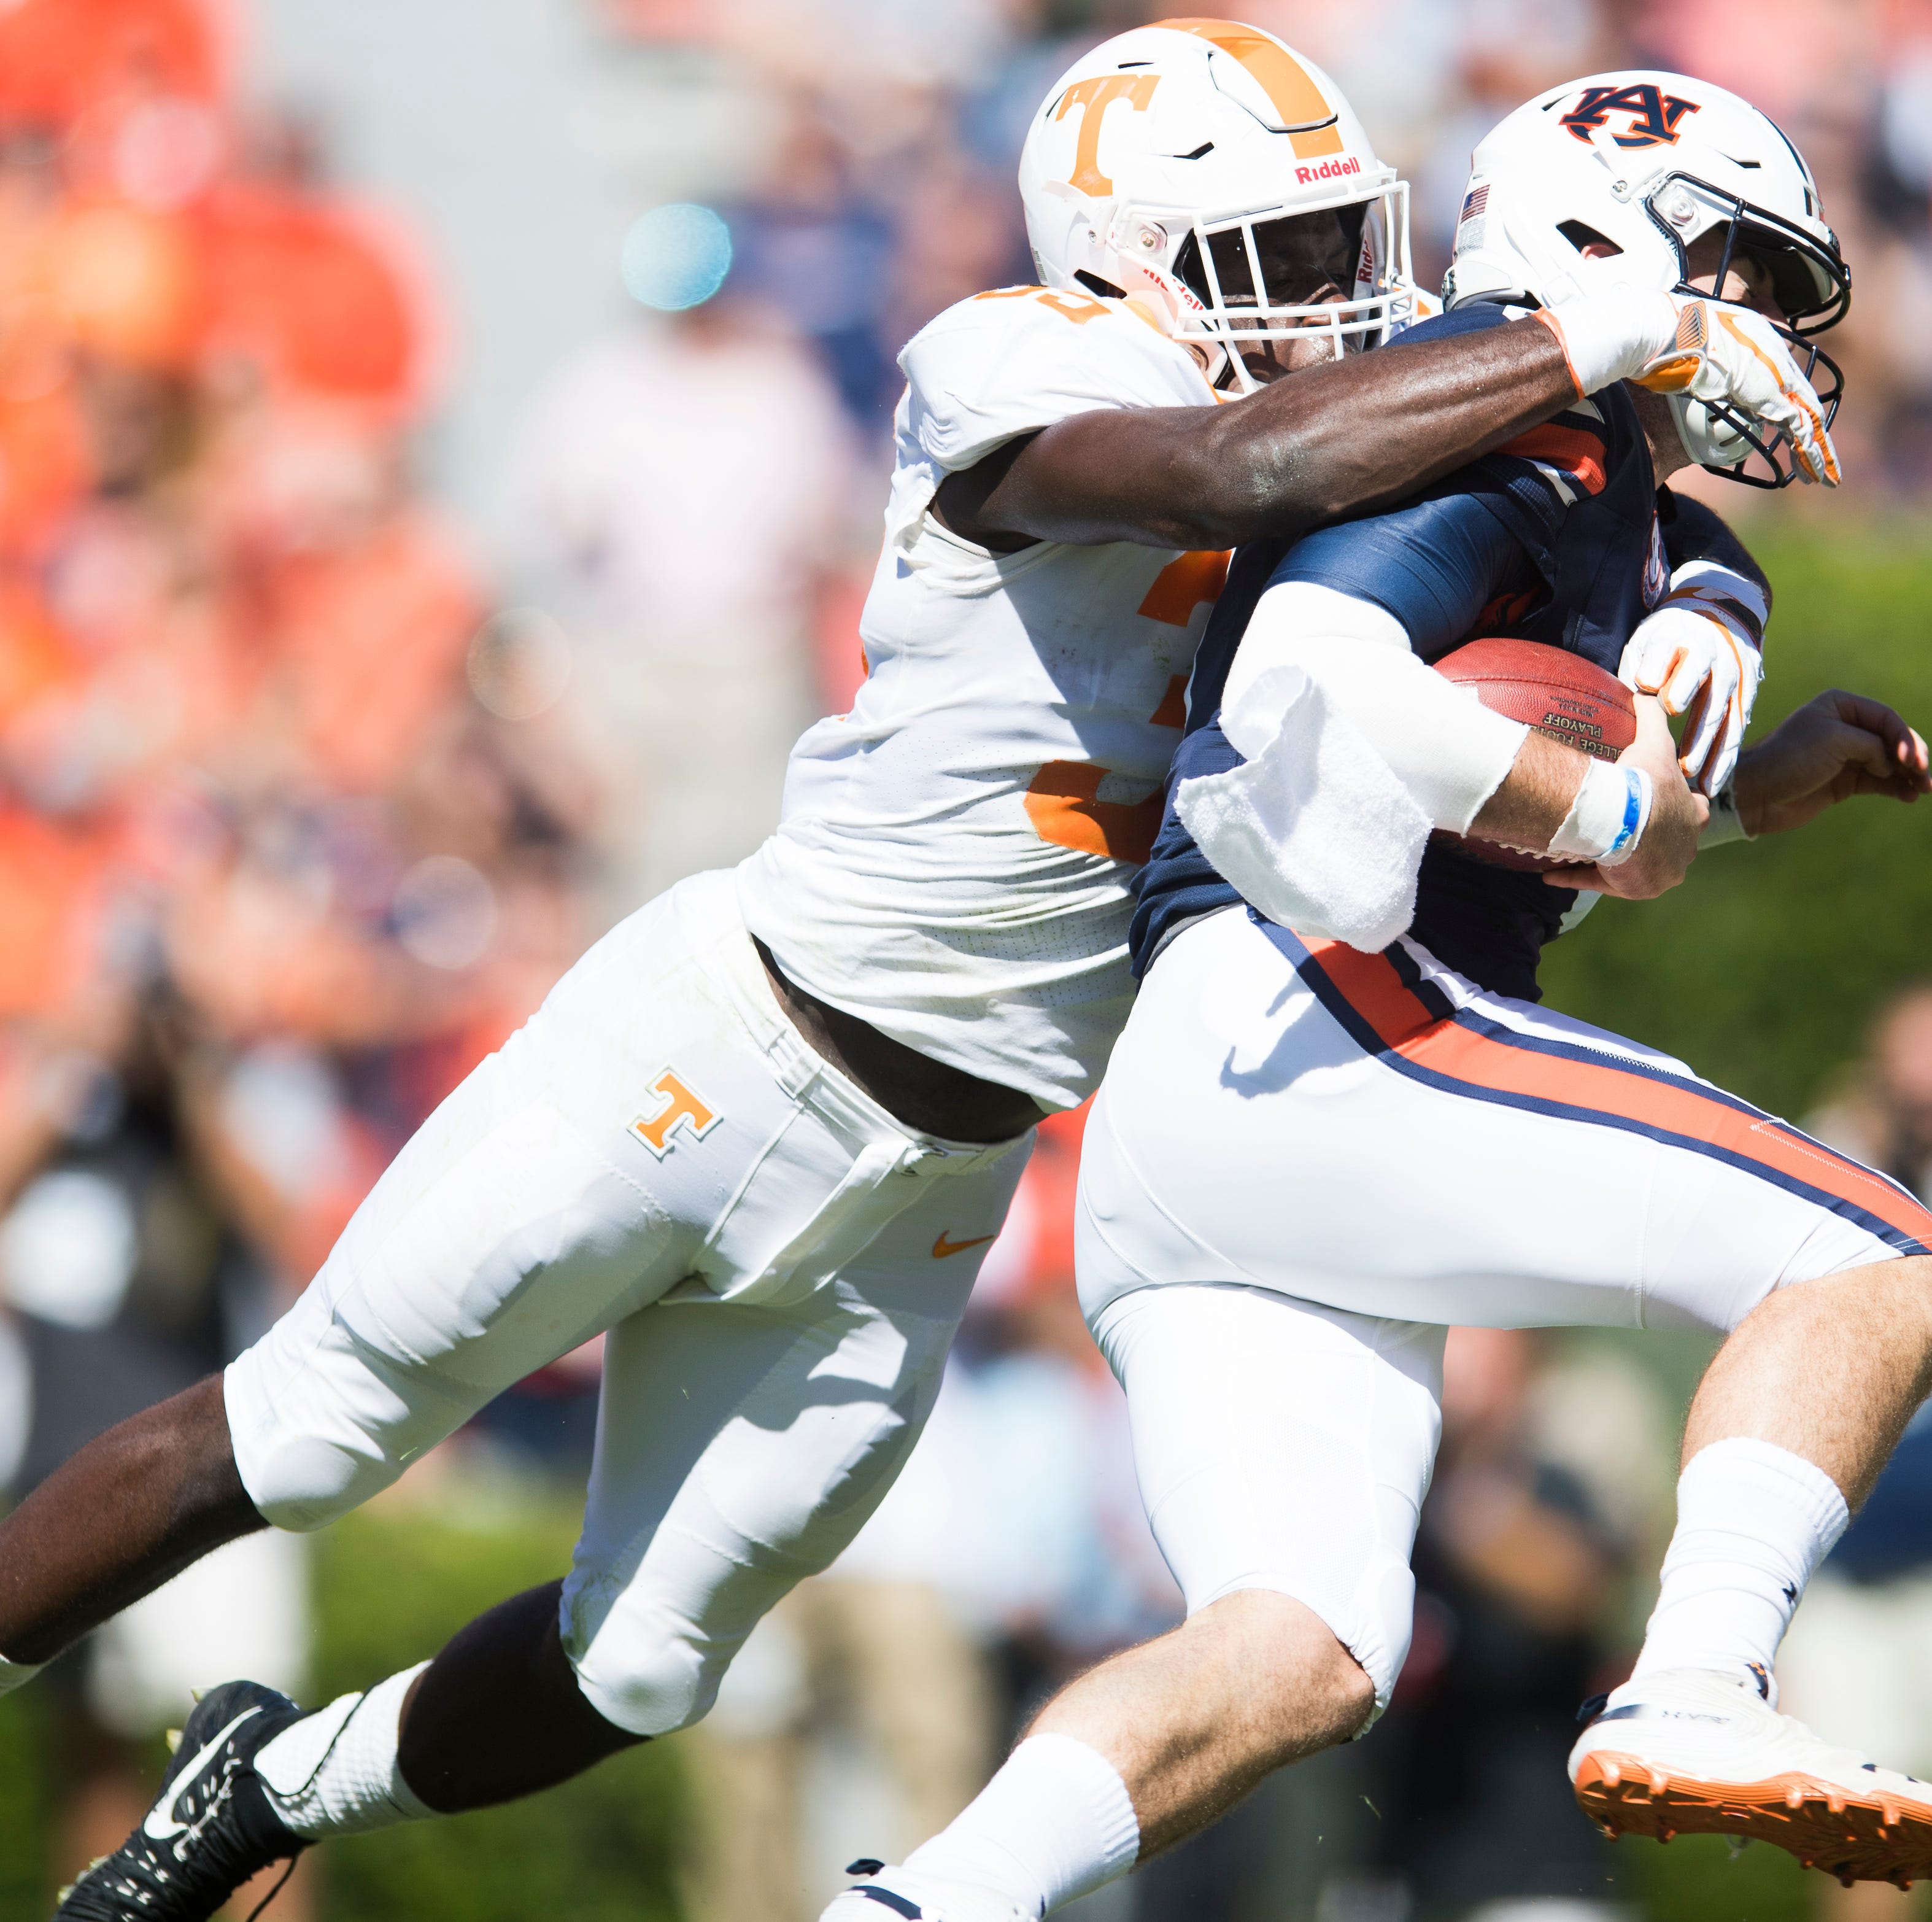 UT Vols coach Jeremy Pruitt has no gripe with targeting call on Daniel Bituli